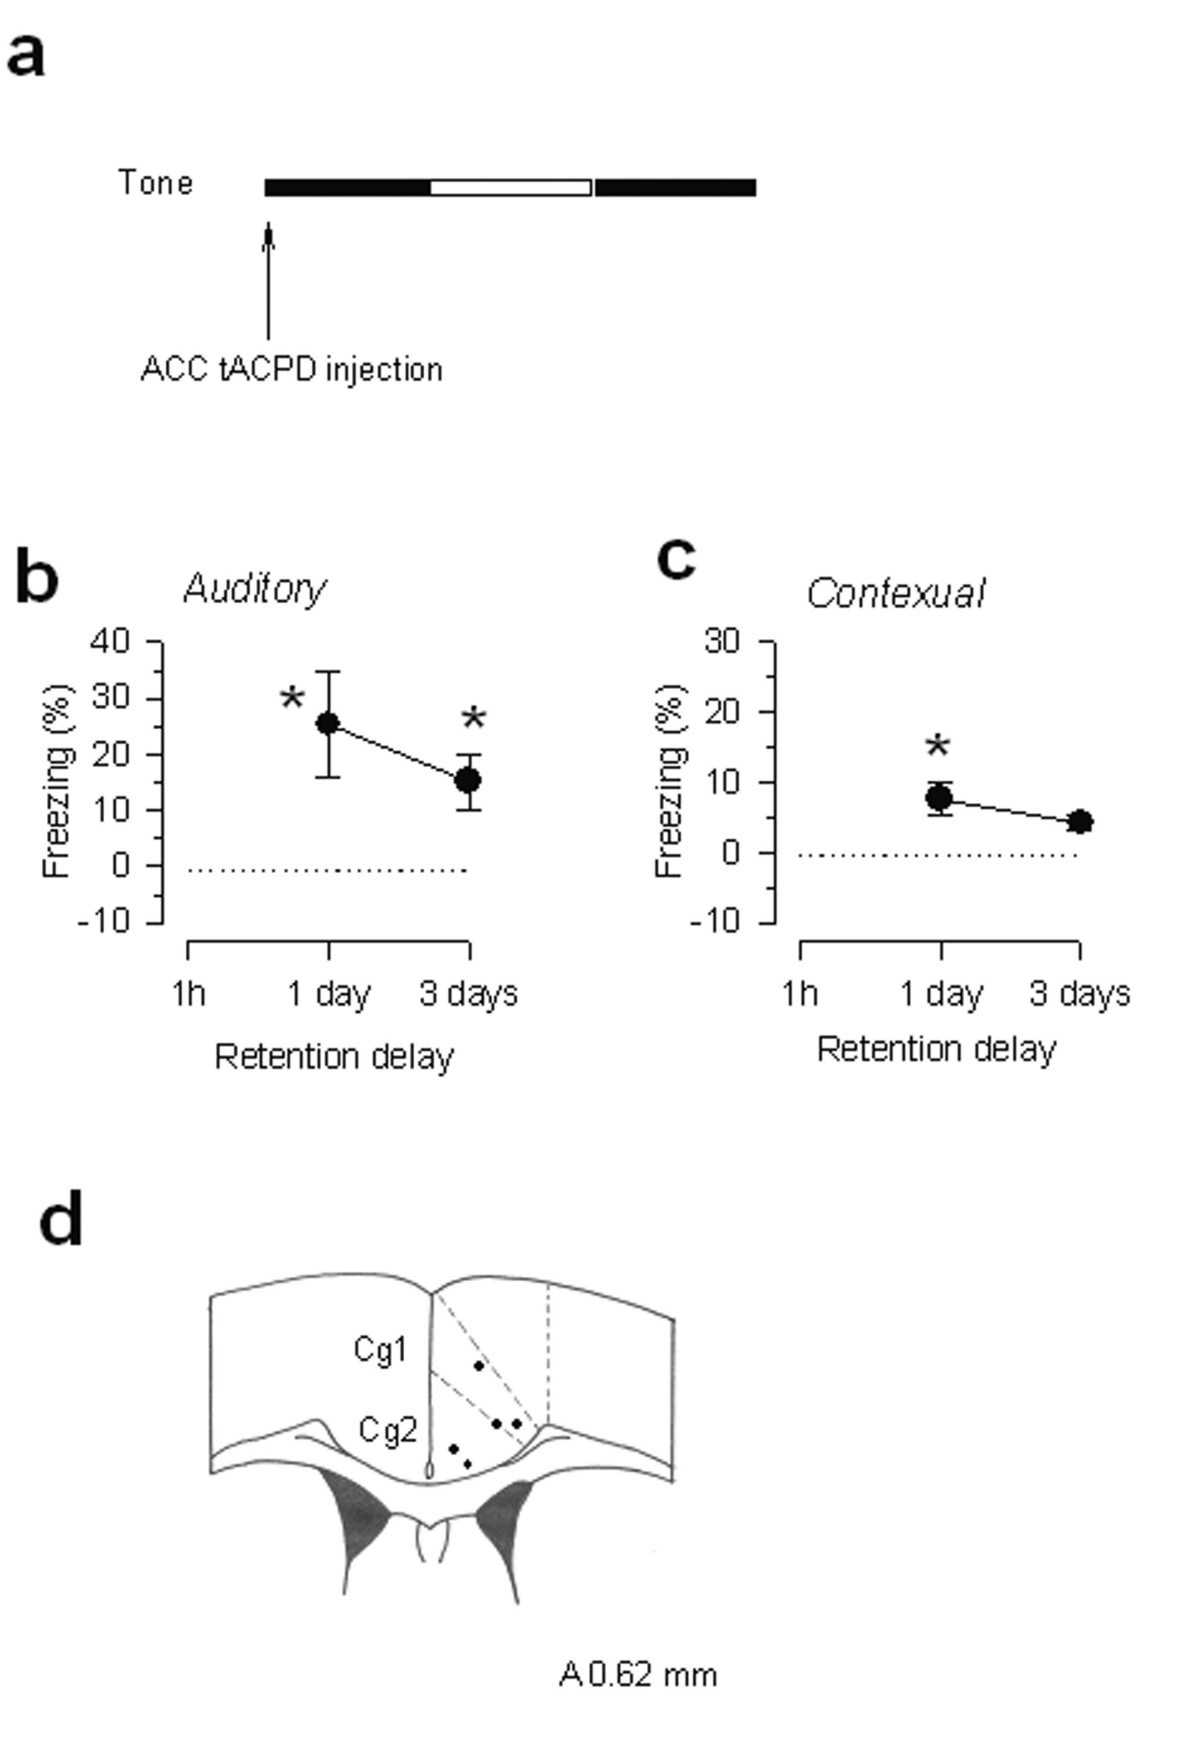 http://static-content.springer.com/image/art%3A10.1186%2F1744-8069-1-6/MediaObjects/12990_2004_Article_6_Fig3_HTML.jpg